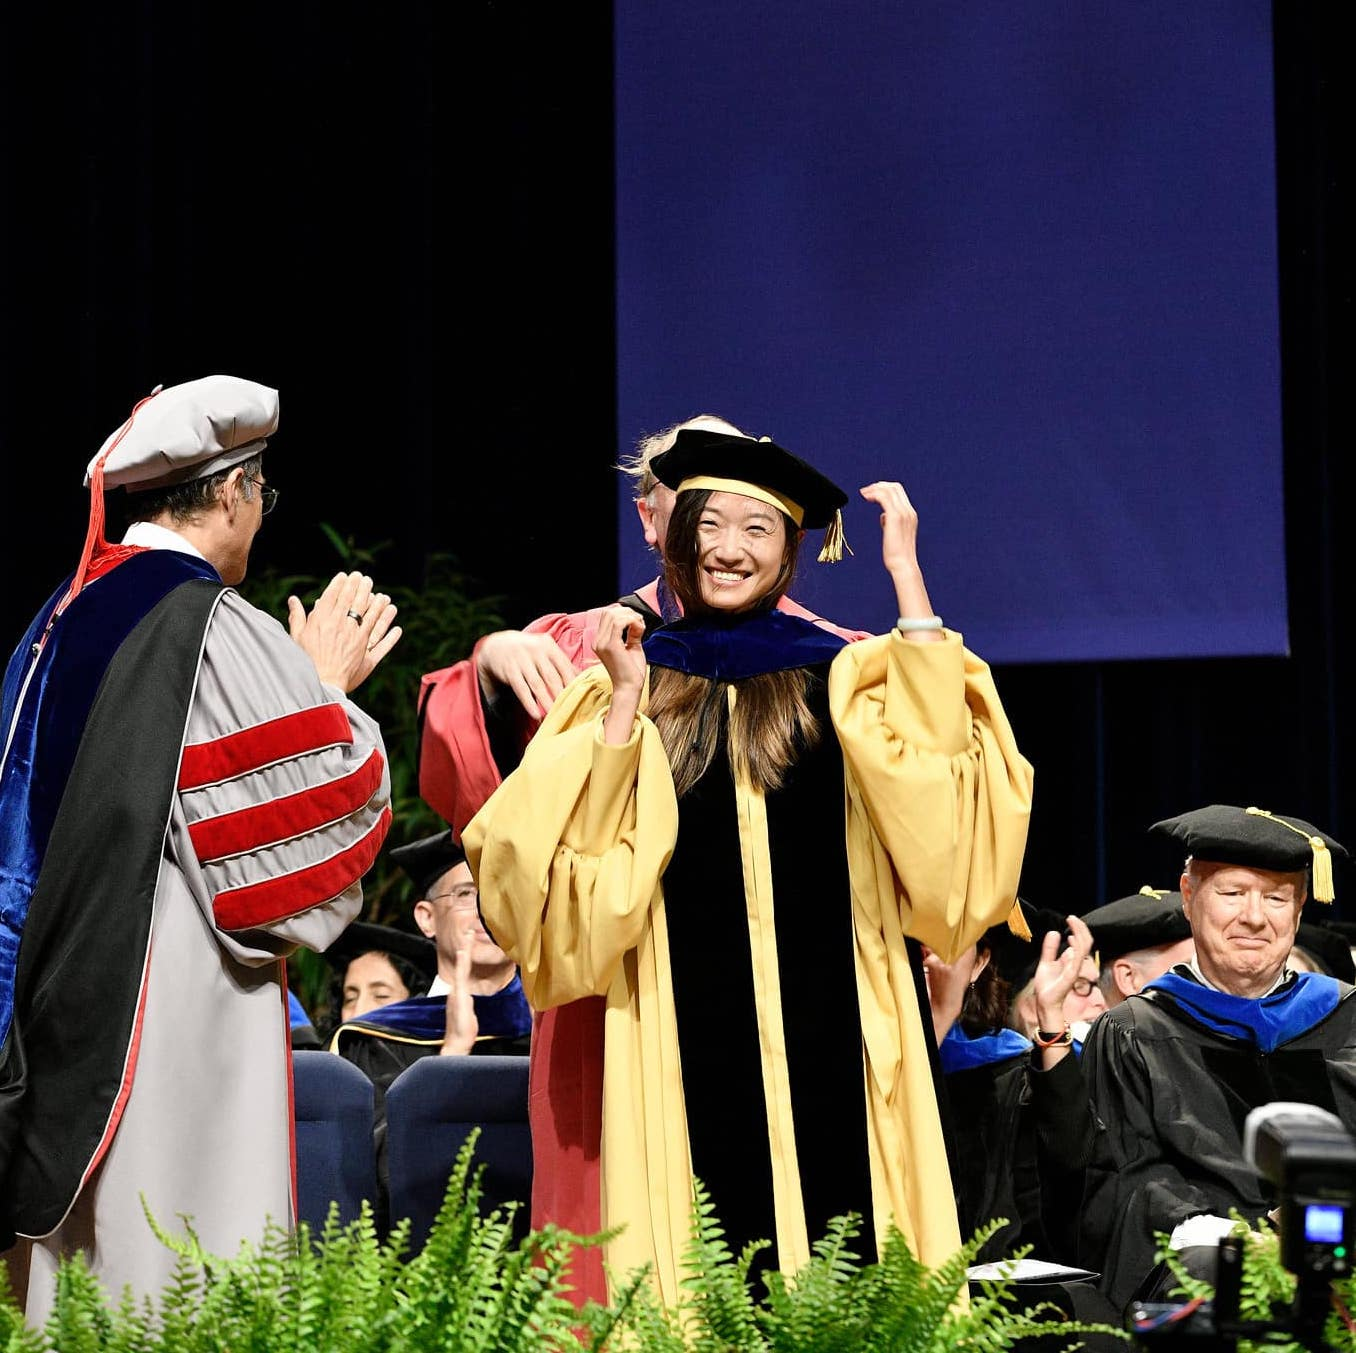 A Johns Hopkins SAIS doctoral candidate receives her robes at commencement